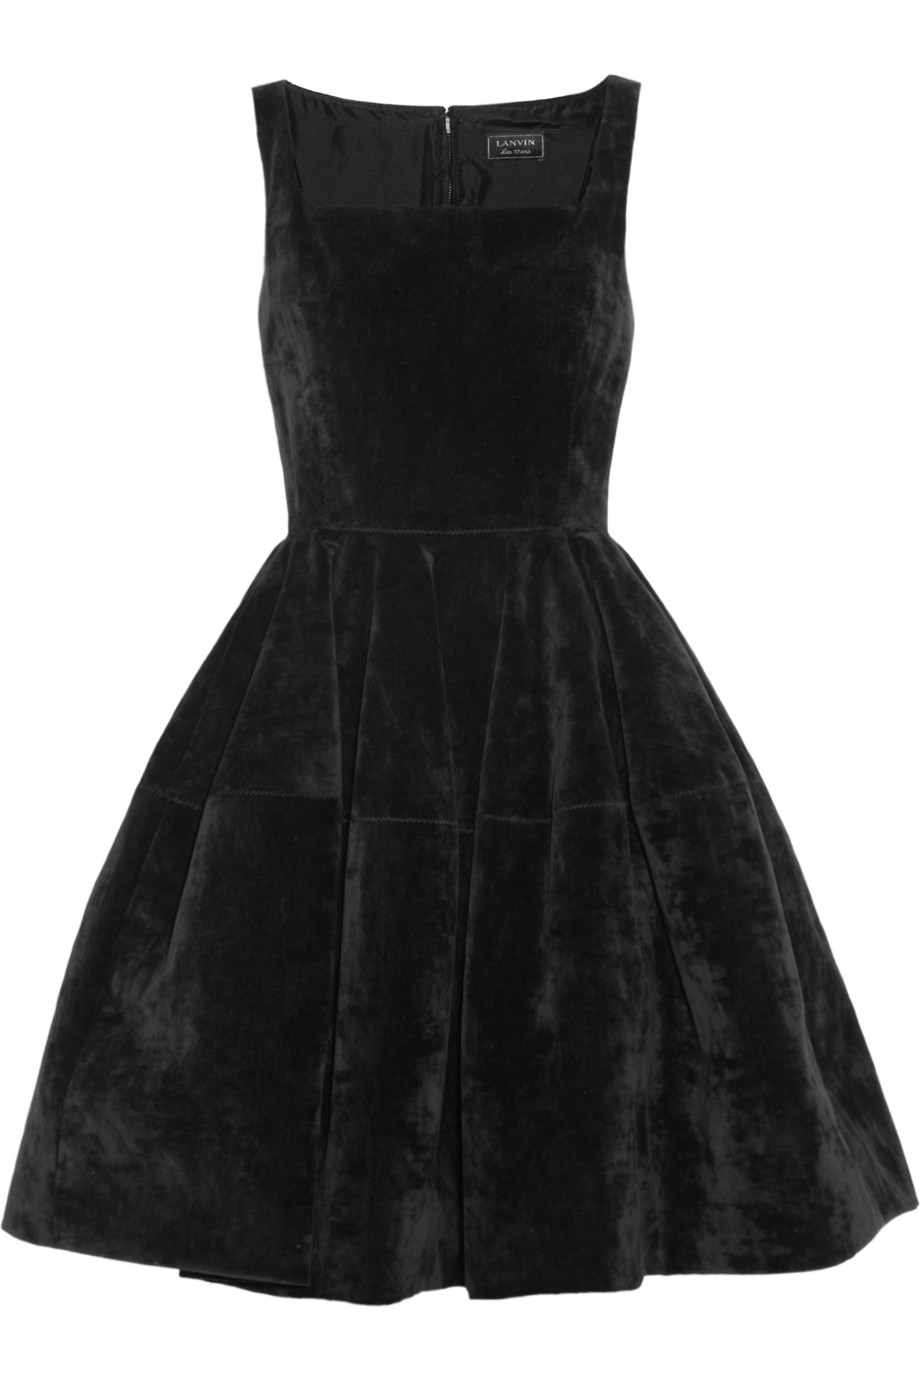 French Connection Dresses